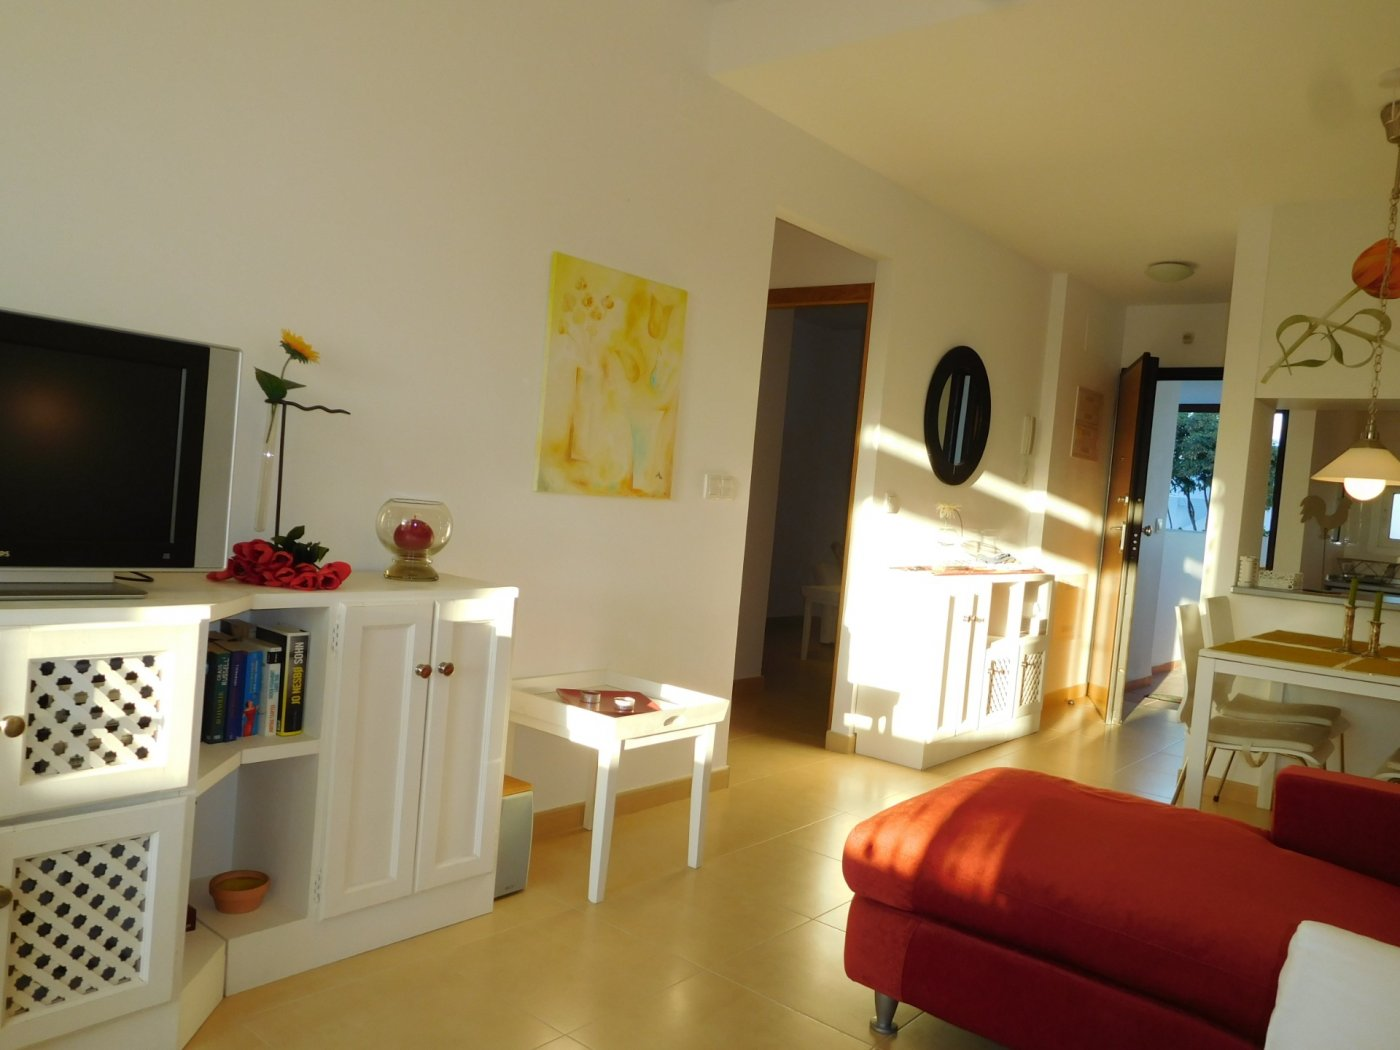 Gallery Image 5 of Apartment For rent in Condado De Alhama, Alhama De Murcia With Pool